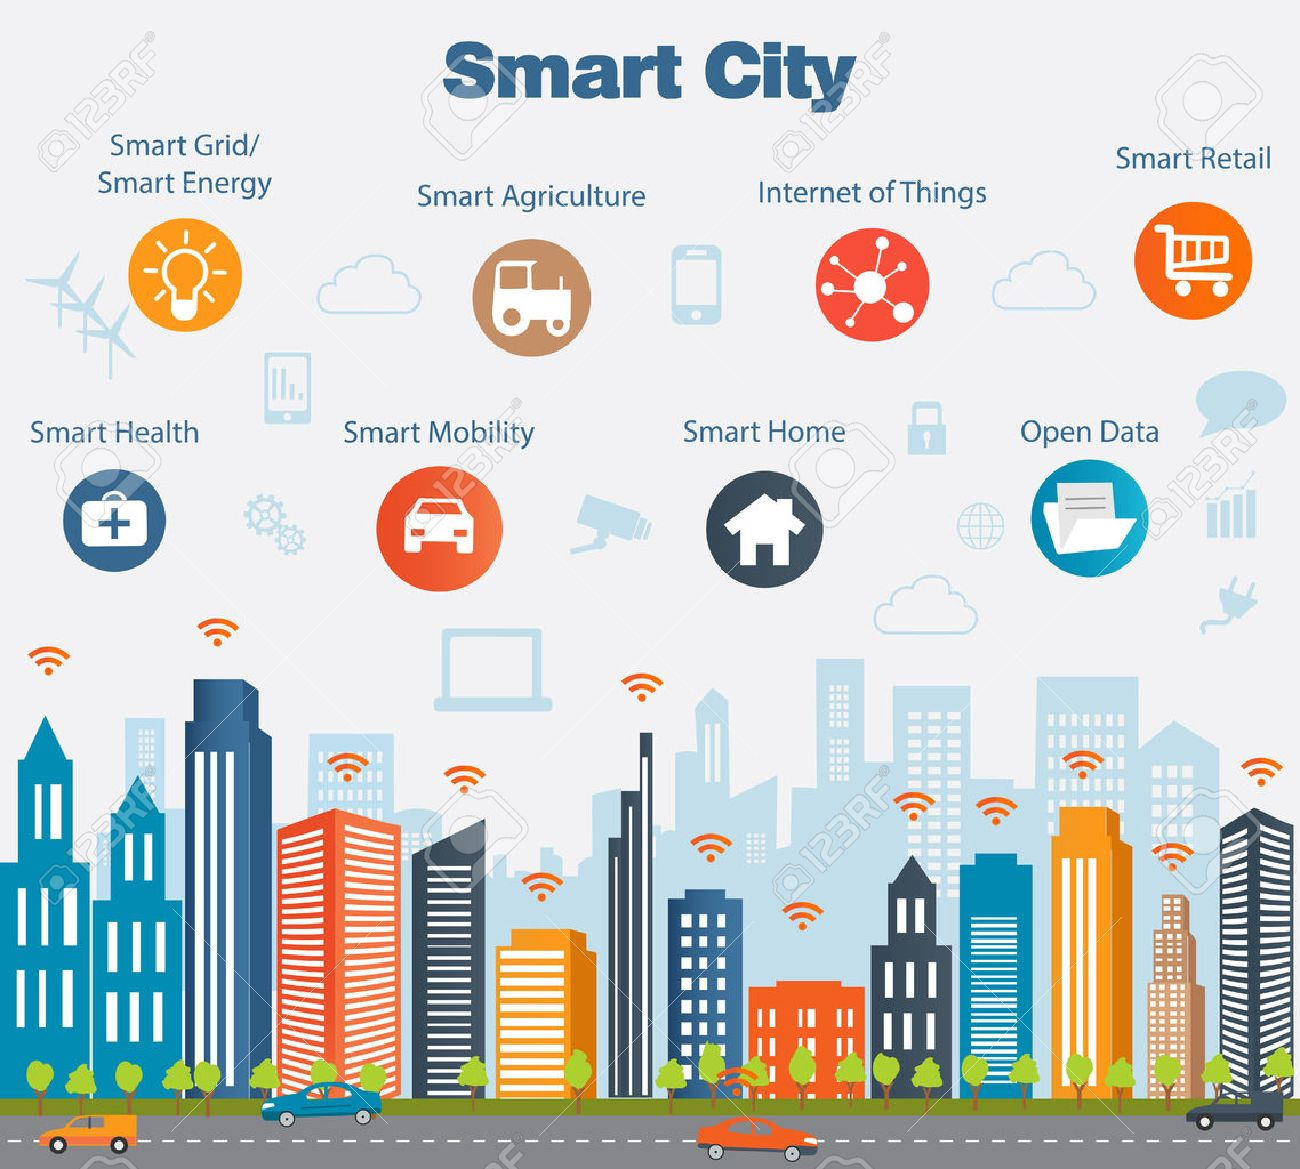 Smart city concept with different icon and elements. Modern city design with future technology for living. Illustration of innovations and Internet of things.Internet of things/Smart city - 52445936